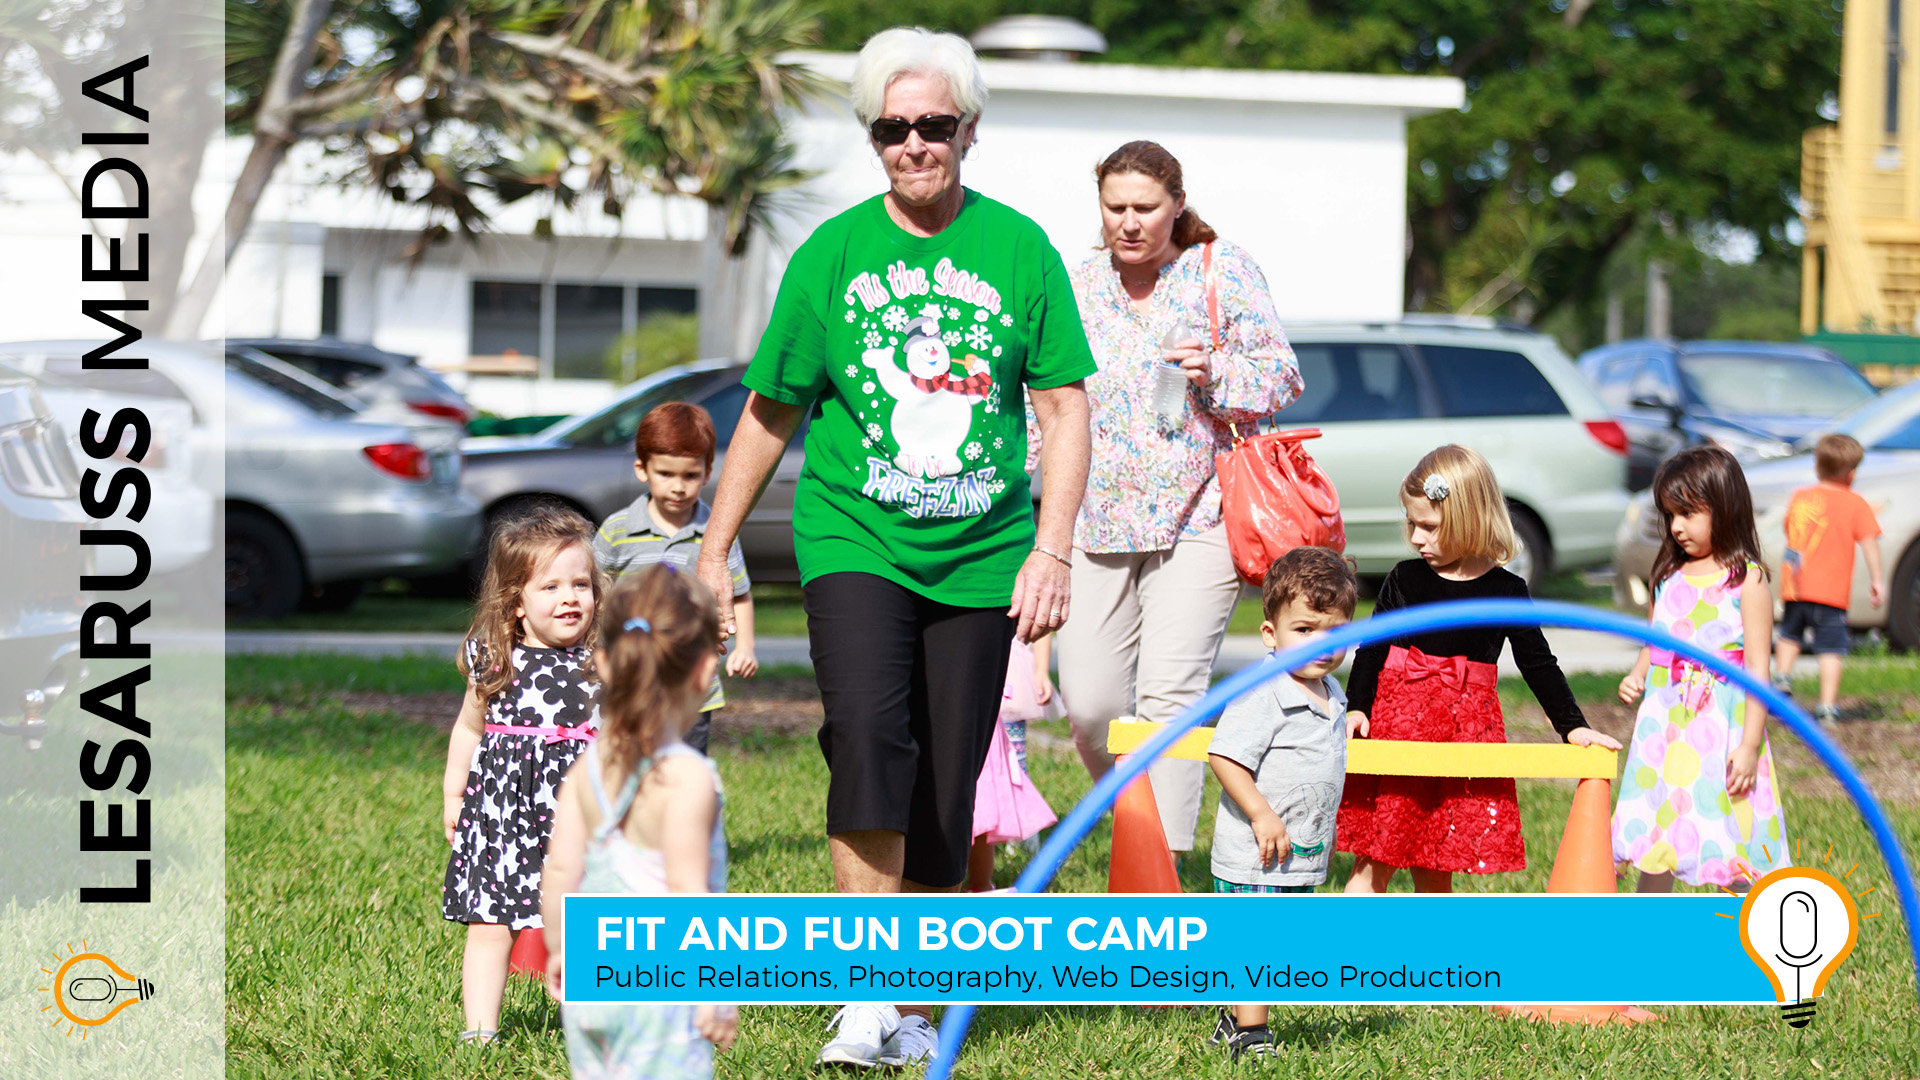 Fit and Fun Boot Camp